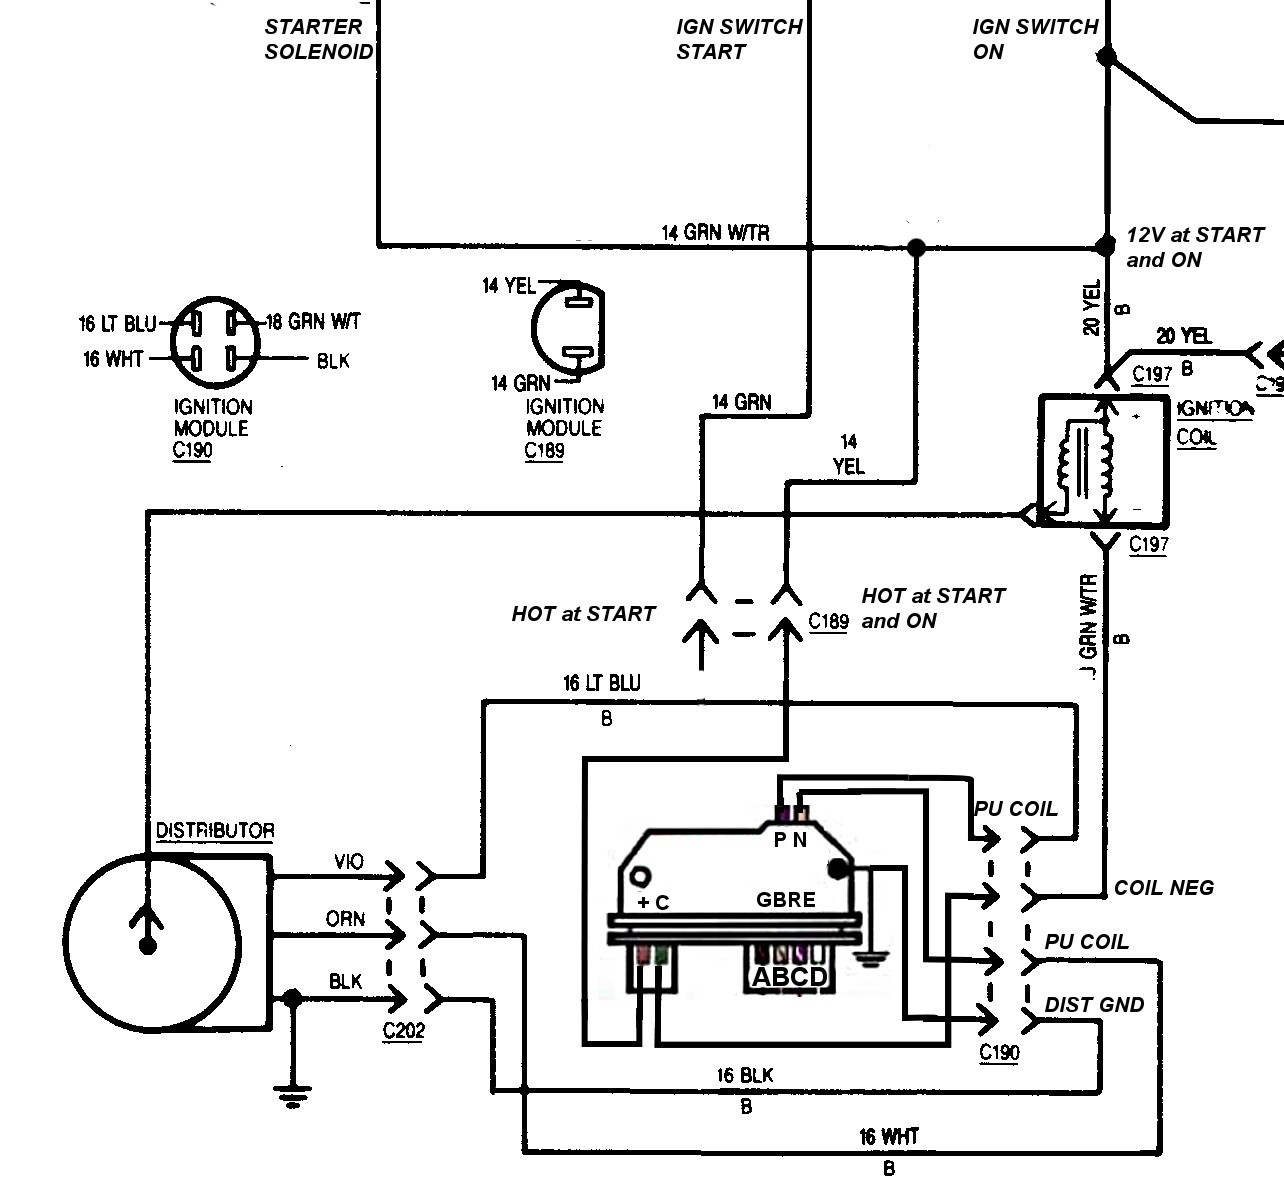 Duraspark Wiring Chrysler House Wiring Diagram Symbols \u2022 Duraspark Ii  Ignition Module Wiring Duraspark Ignition Wiring